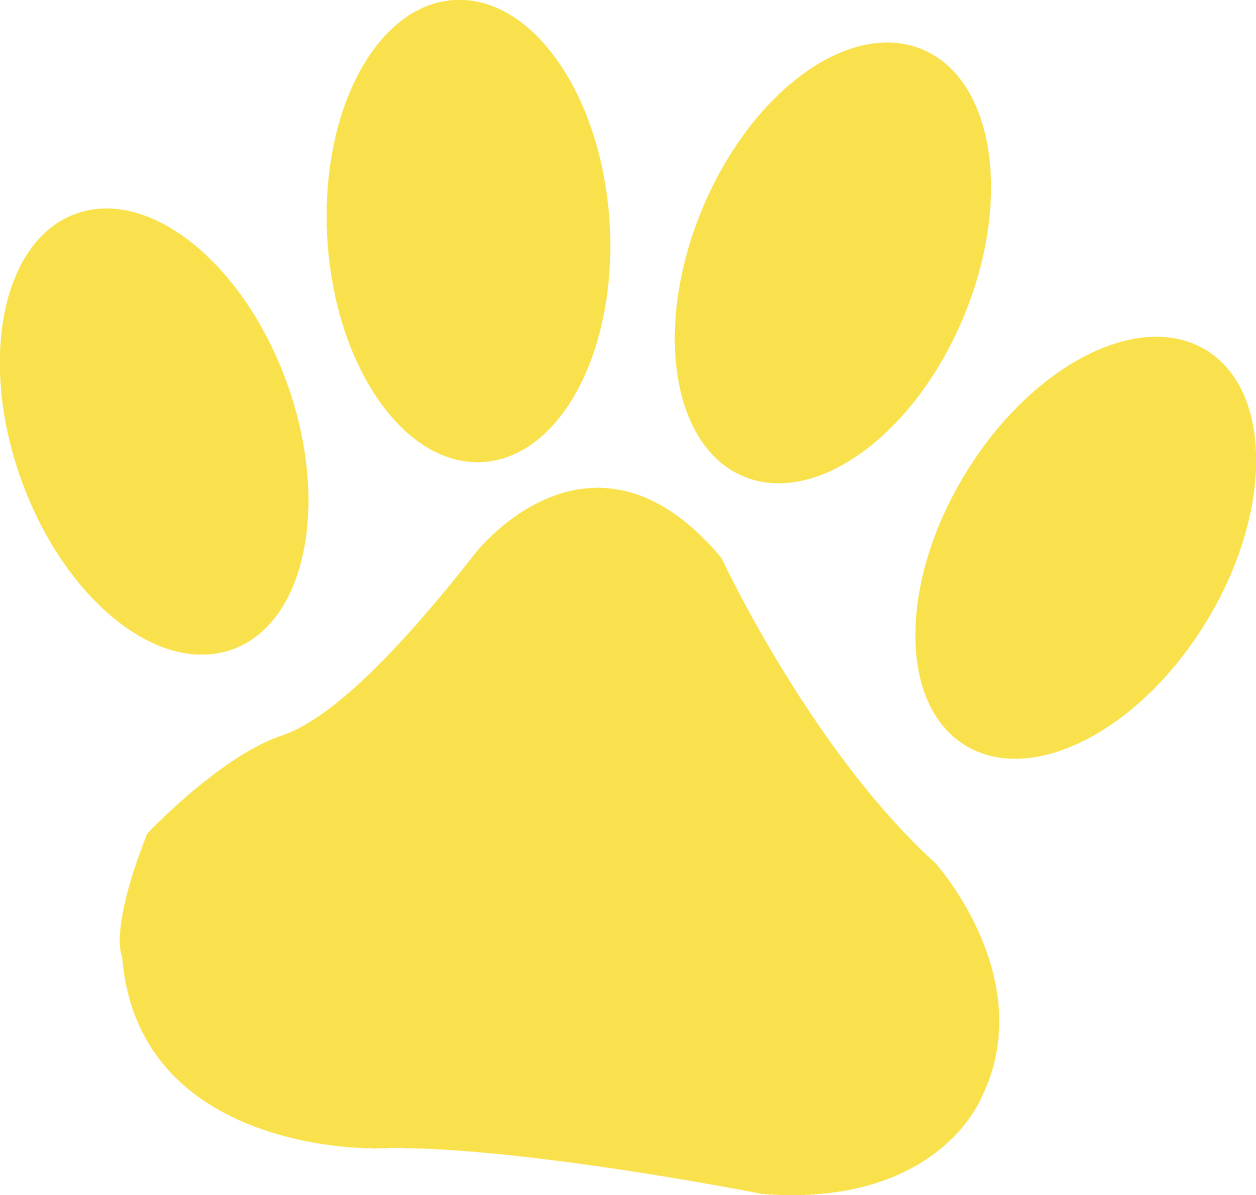 Paw Print Image   Vector Clip Art Online Royalty Free   Public Domain